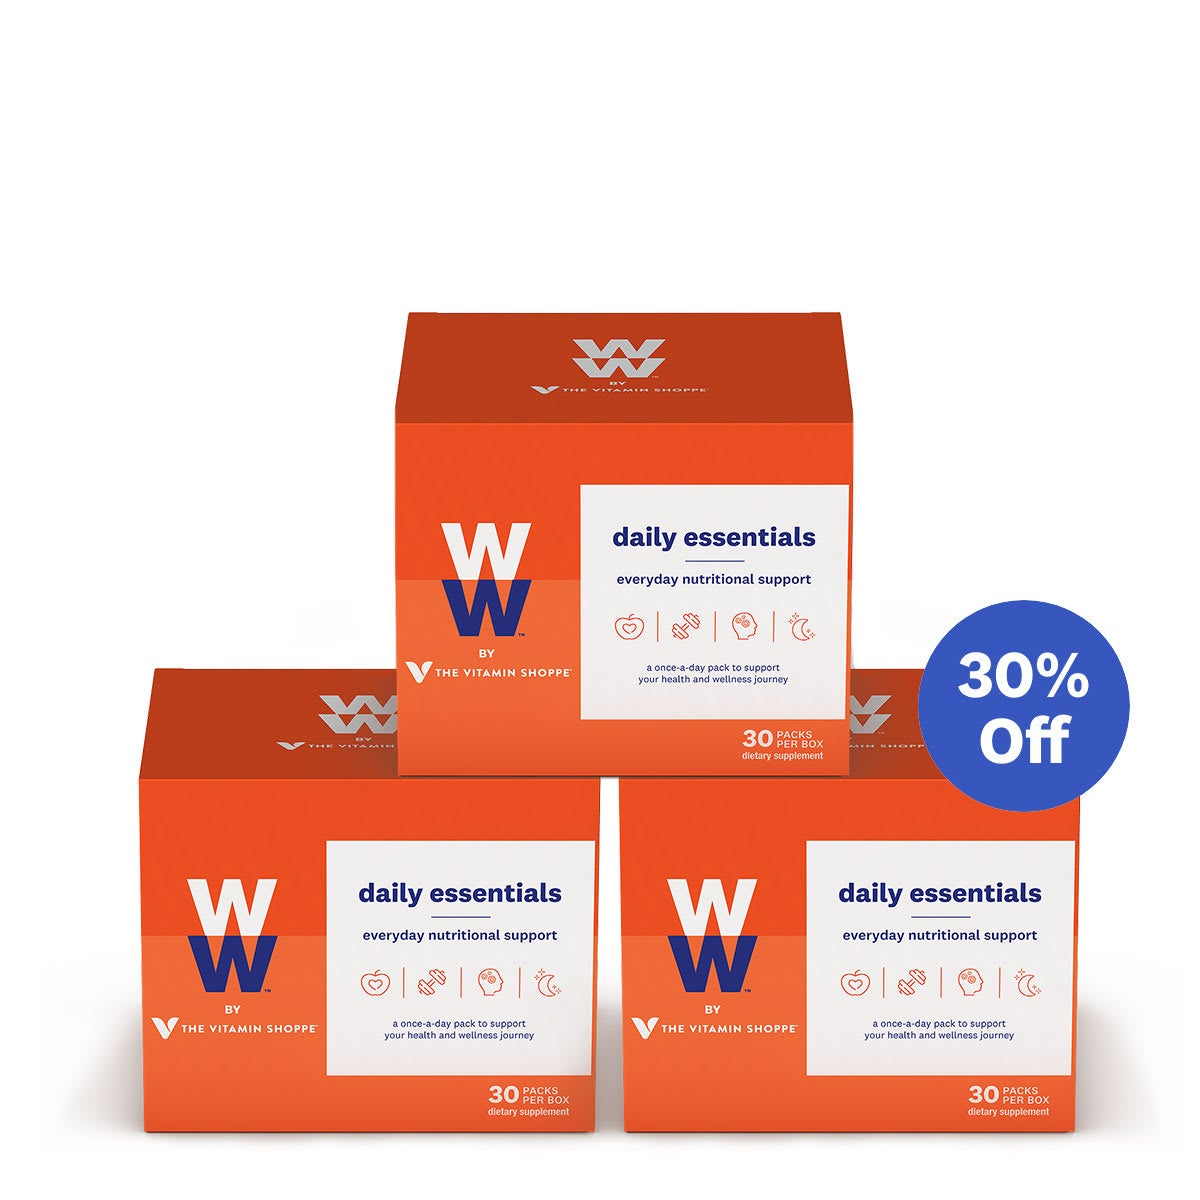 WW by the Vitamin Shoppe Daily Essentials - 90 day, 3 boxes